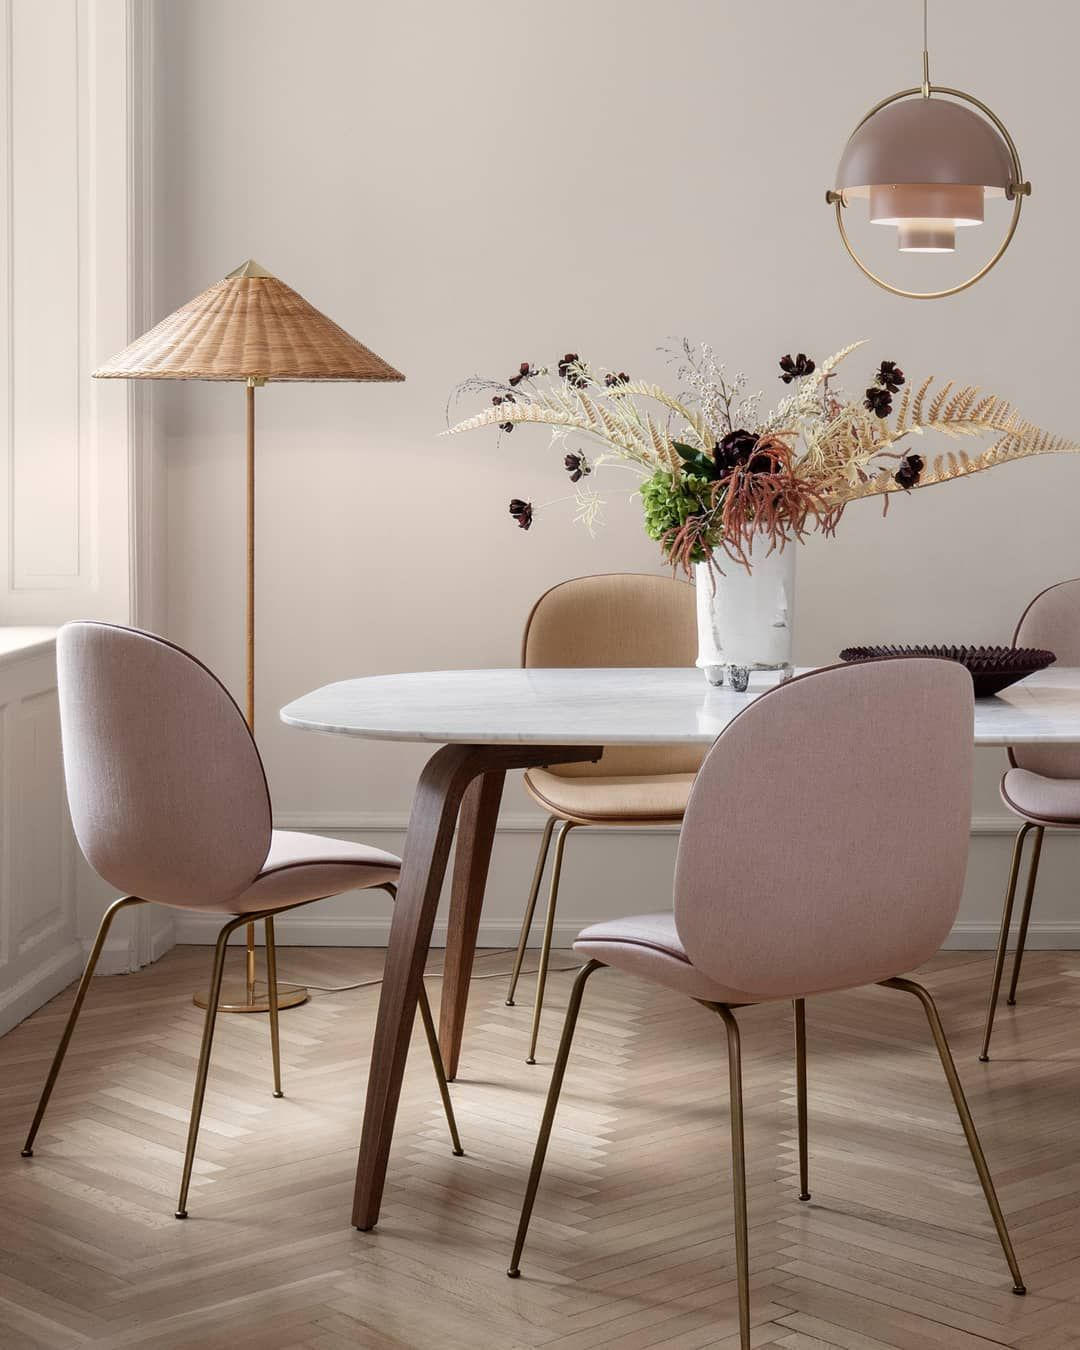 Characterised By Its Elegant And Airy Willow Wicker Lampshade And Rattan Covered Stem The 9602 Floor Lamp Shows P Gubi Dining Table Wicker Floor Lamp Interior